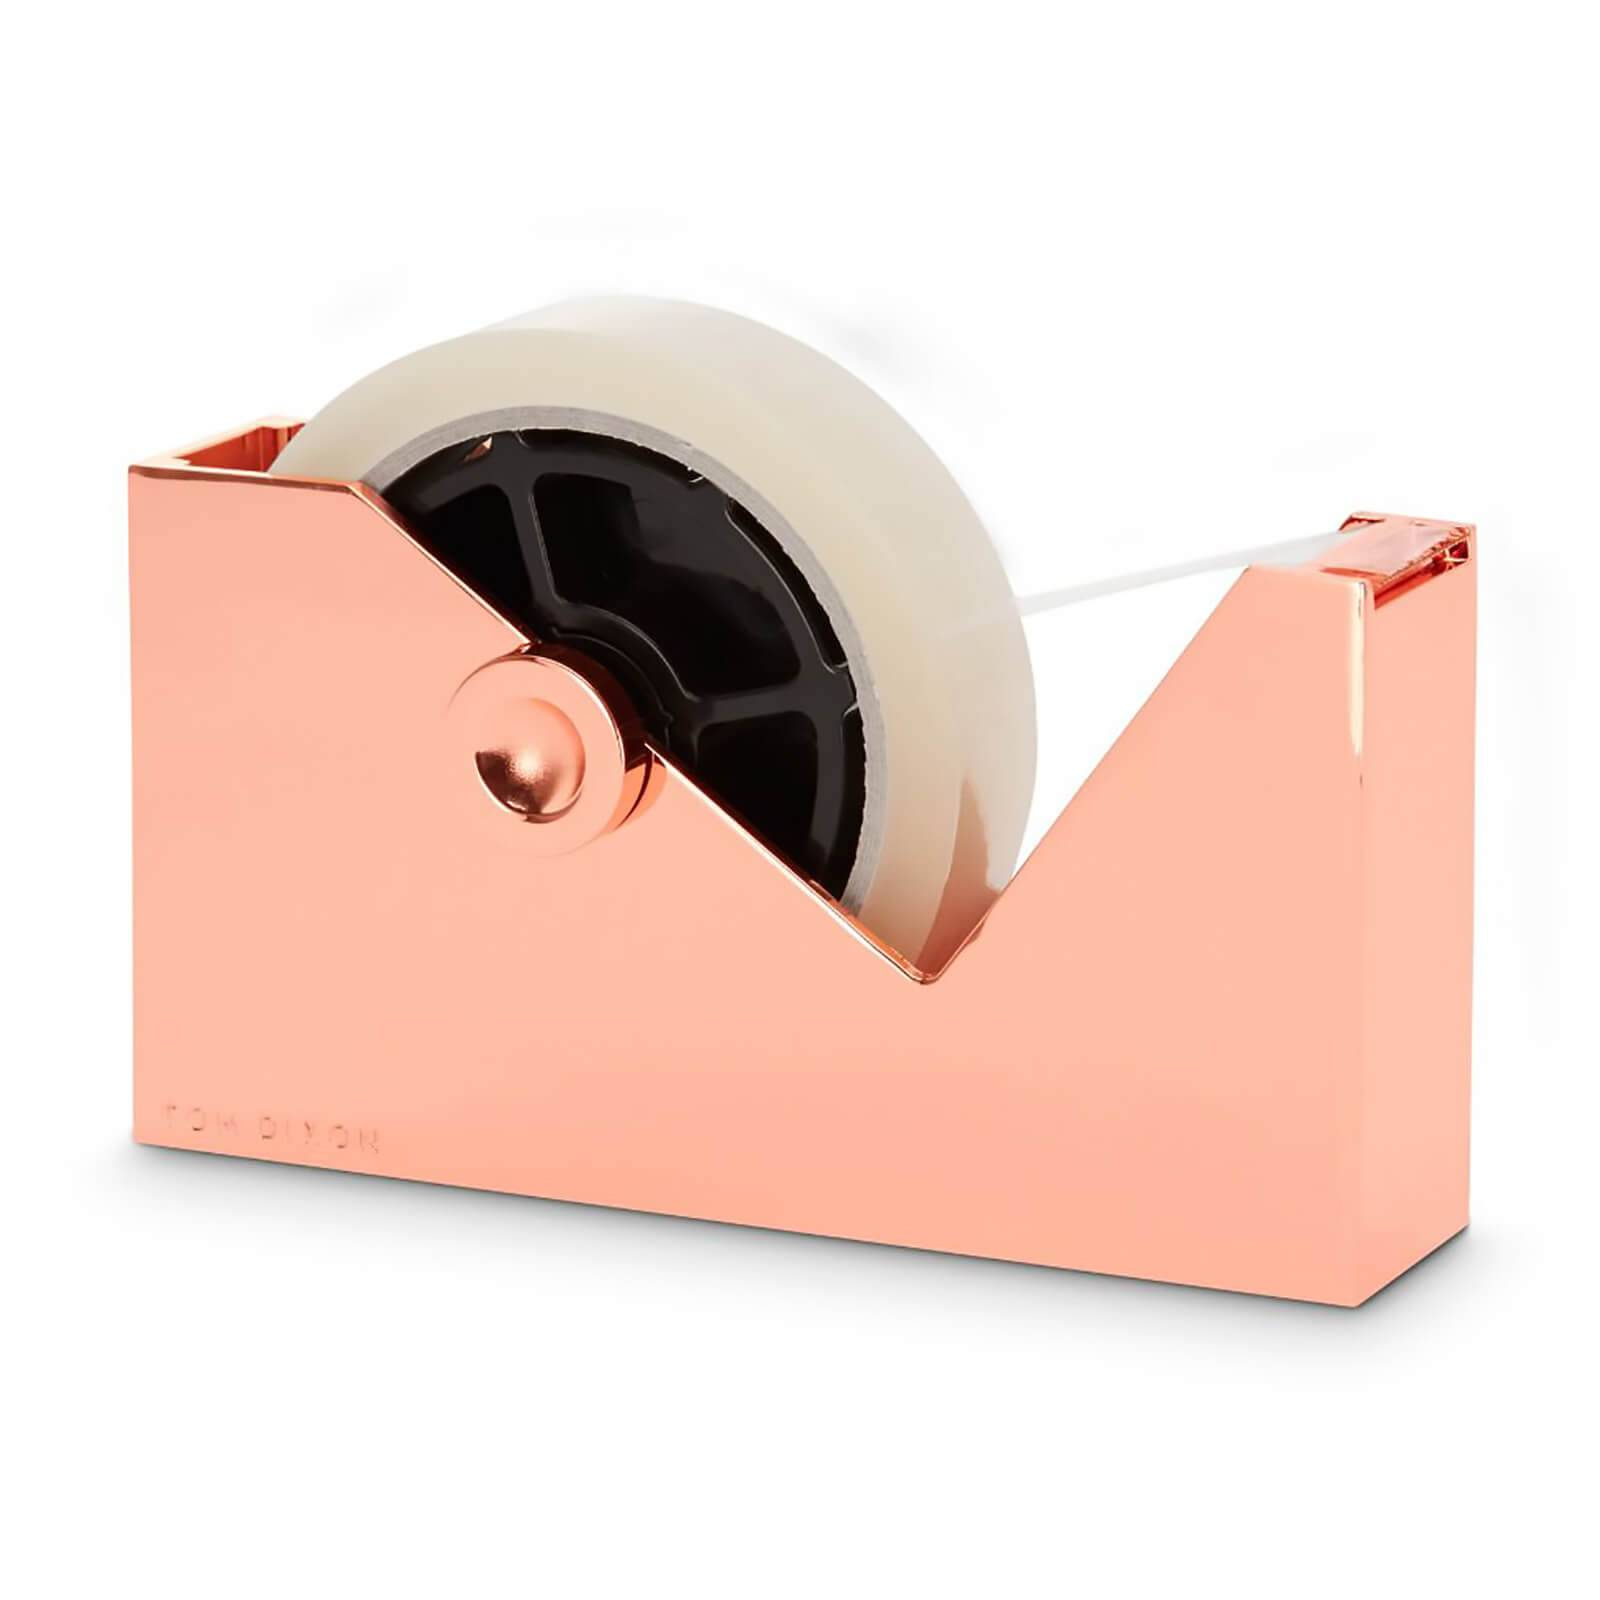 Tom Dixon Cube Tape Dispenser